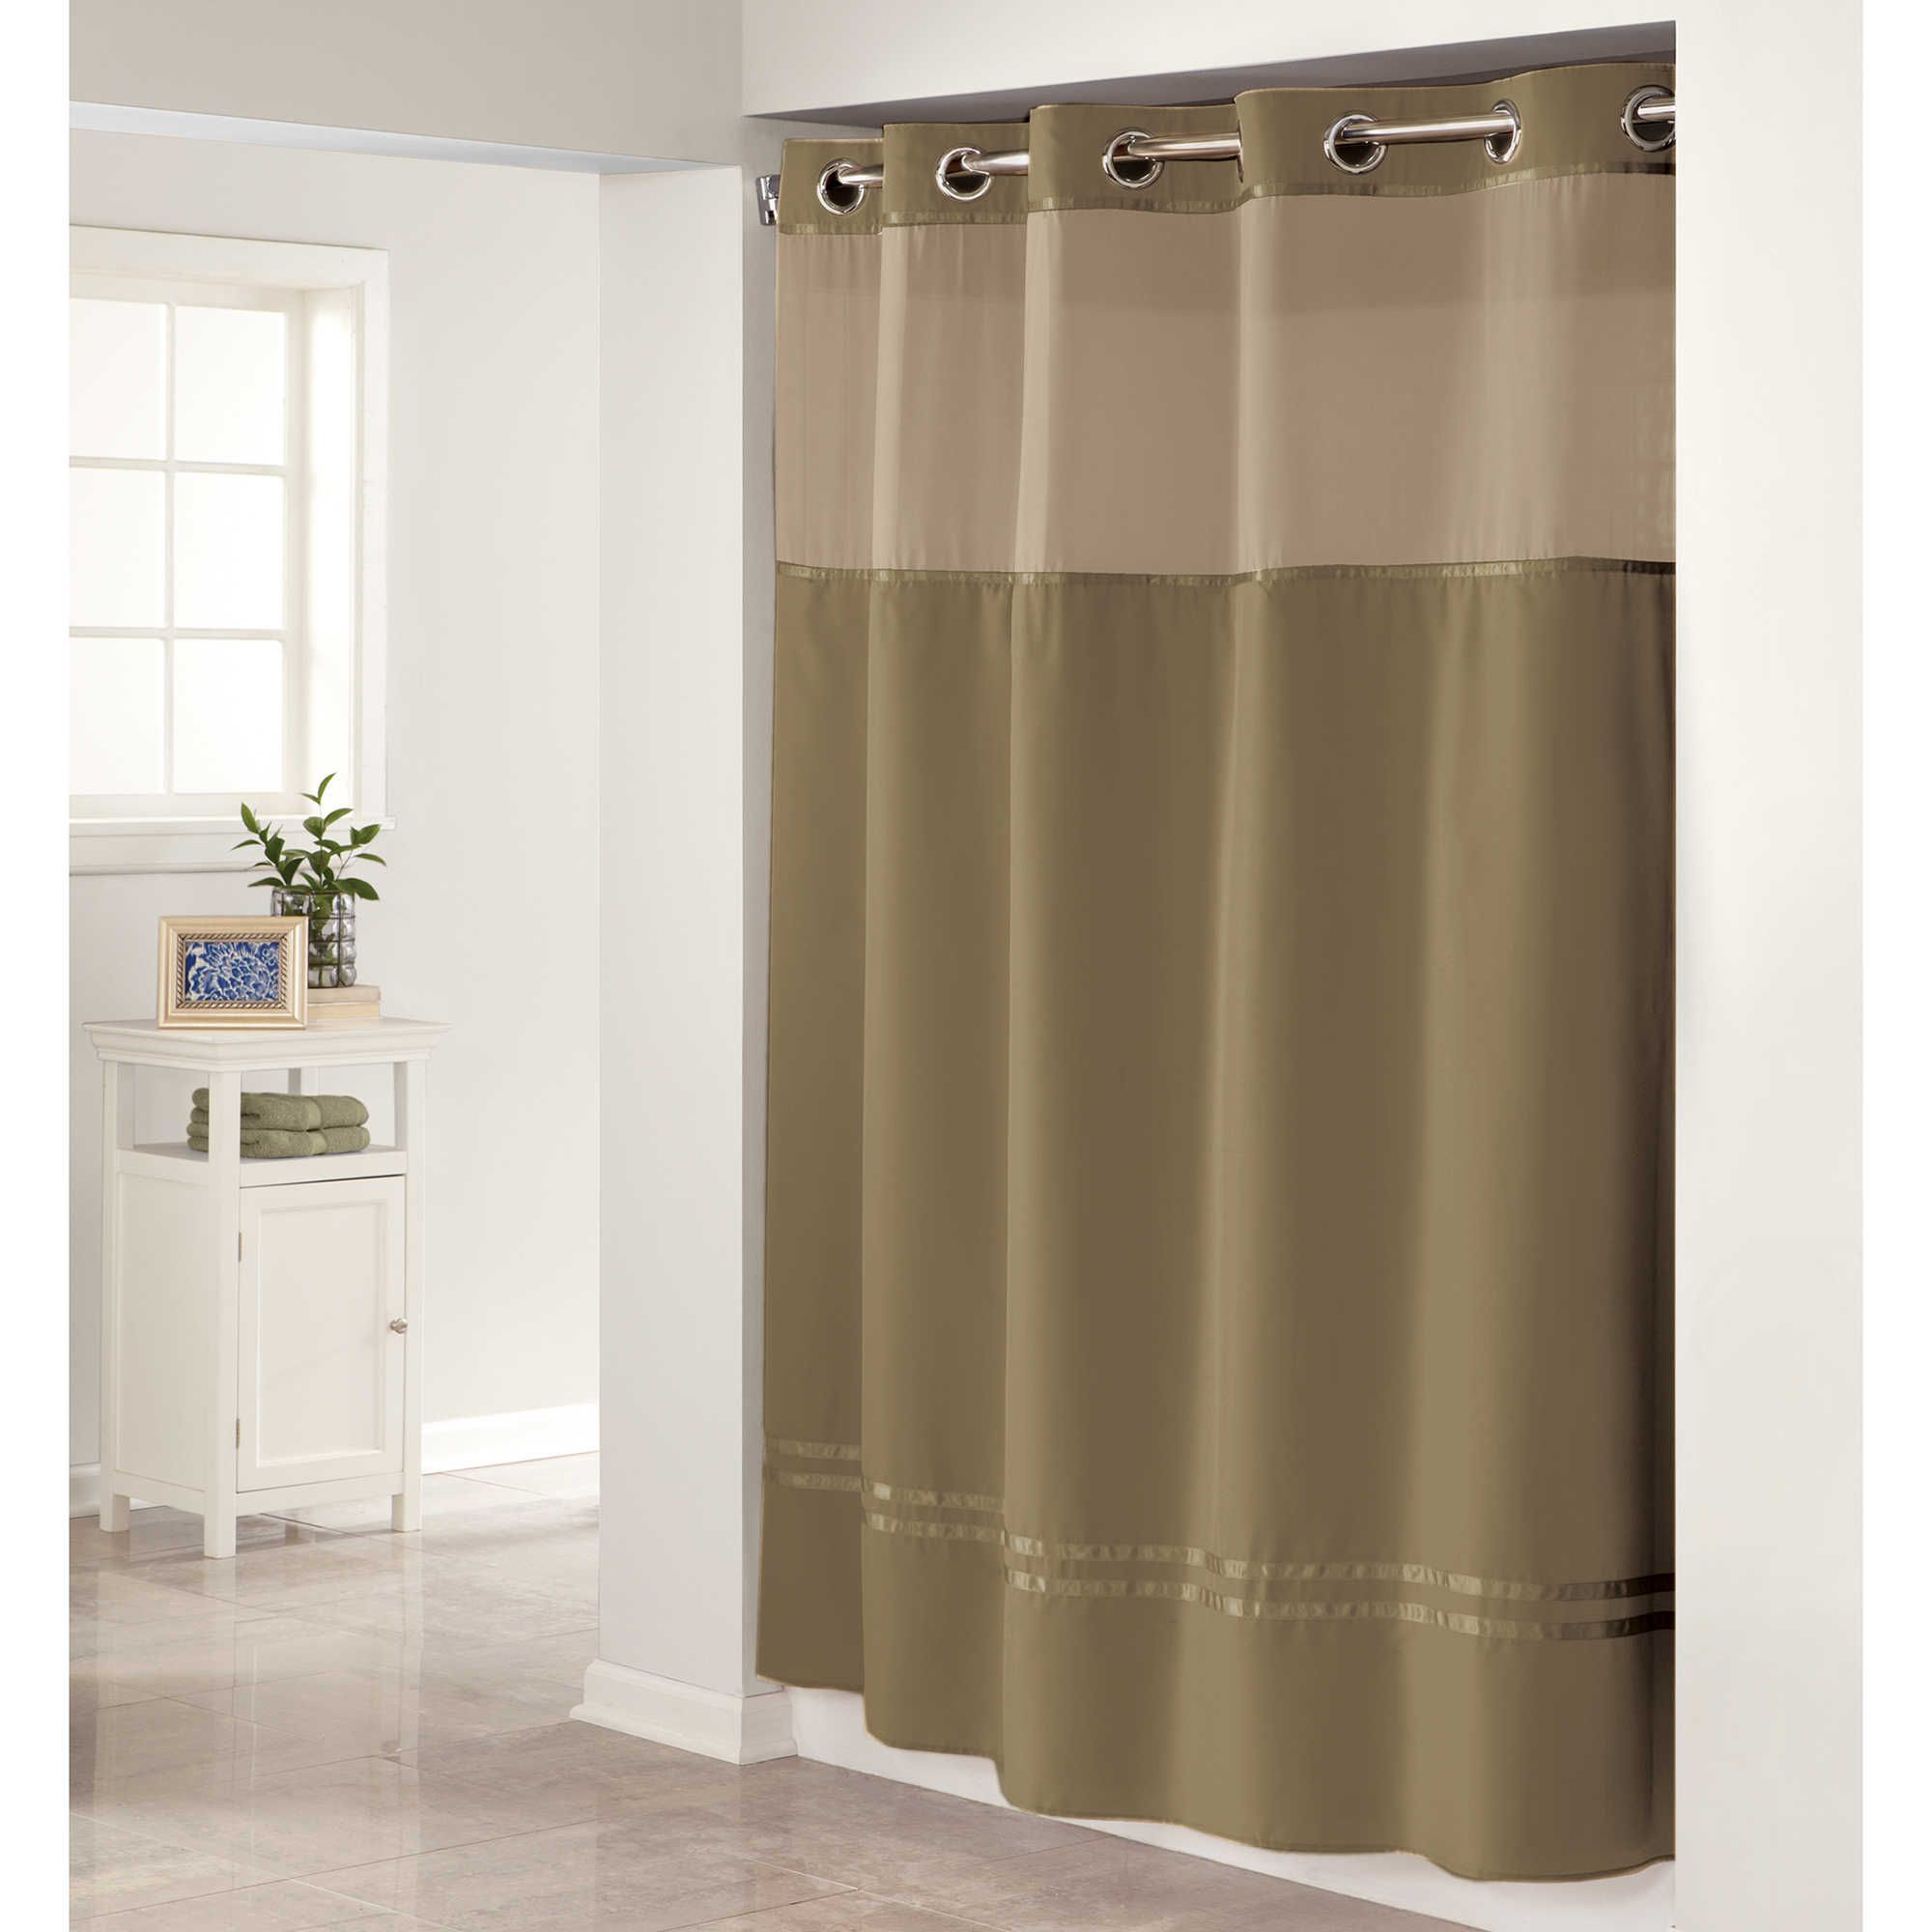 Hookless Escape Shower Curtain in Desert Taupe